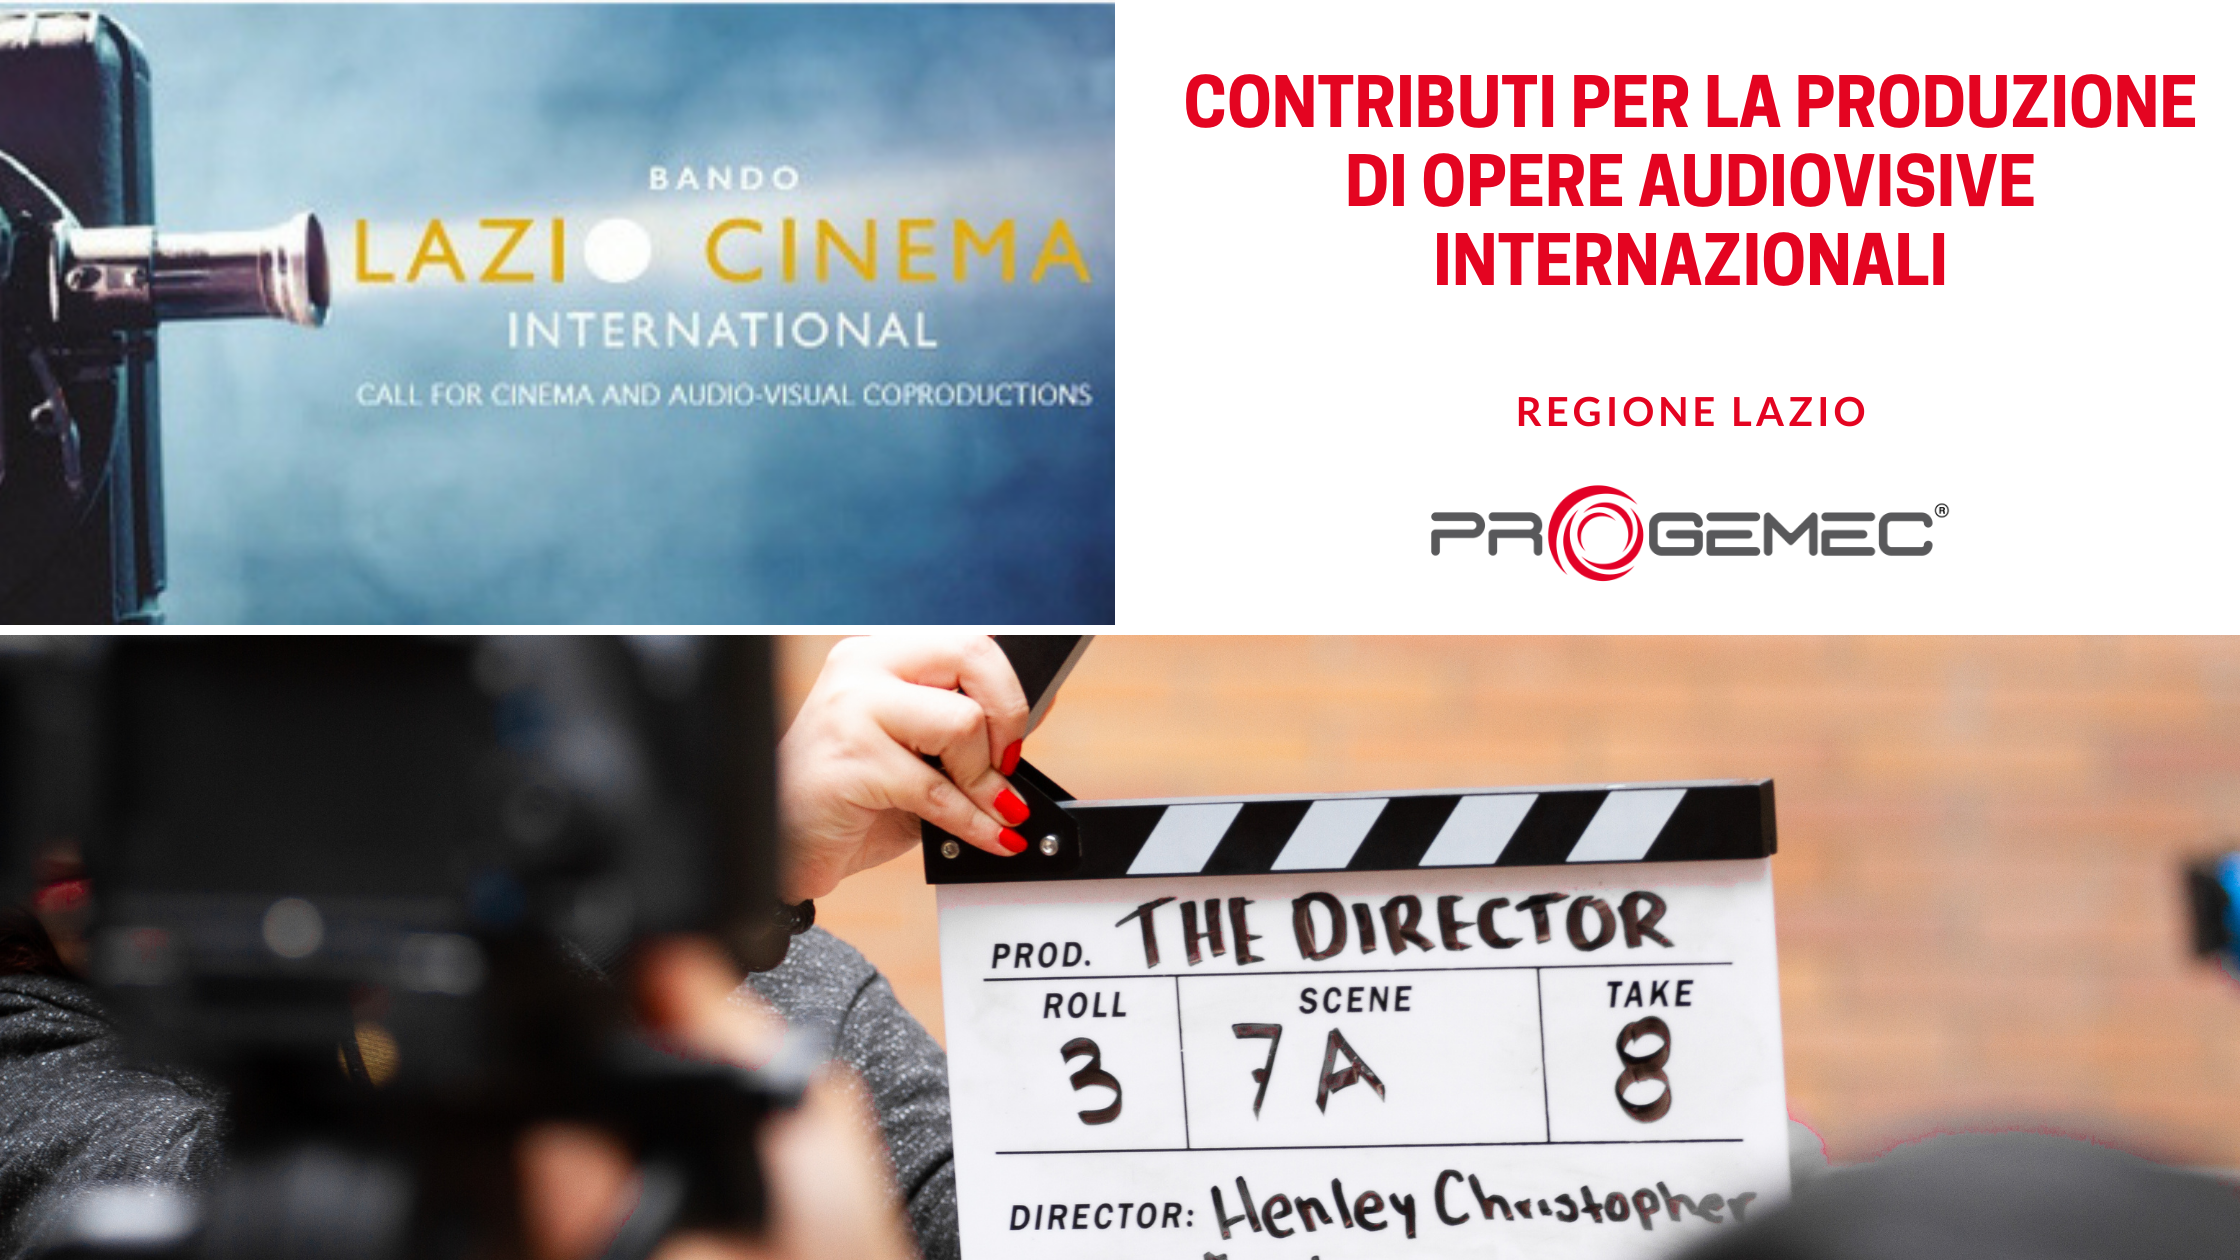 Bando Lazio Cine International